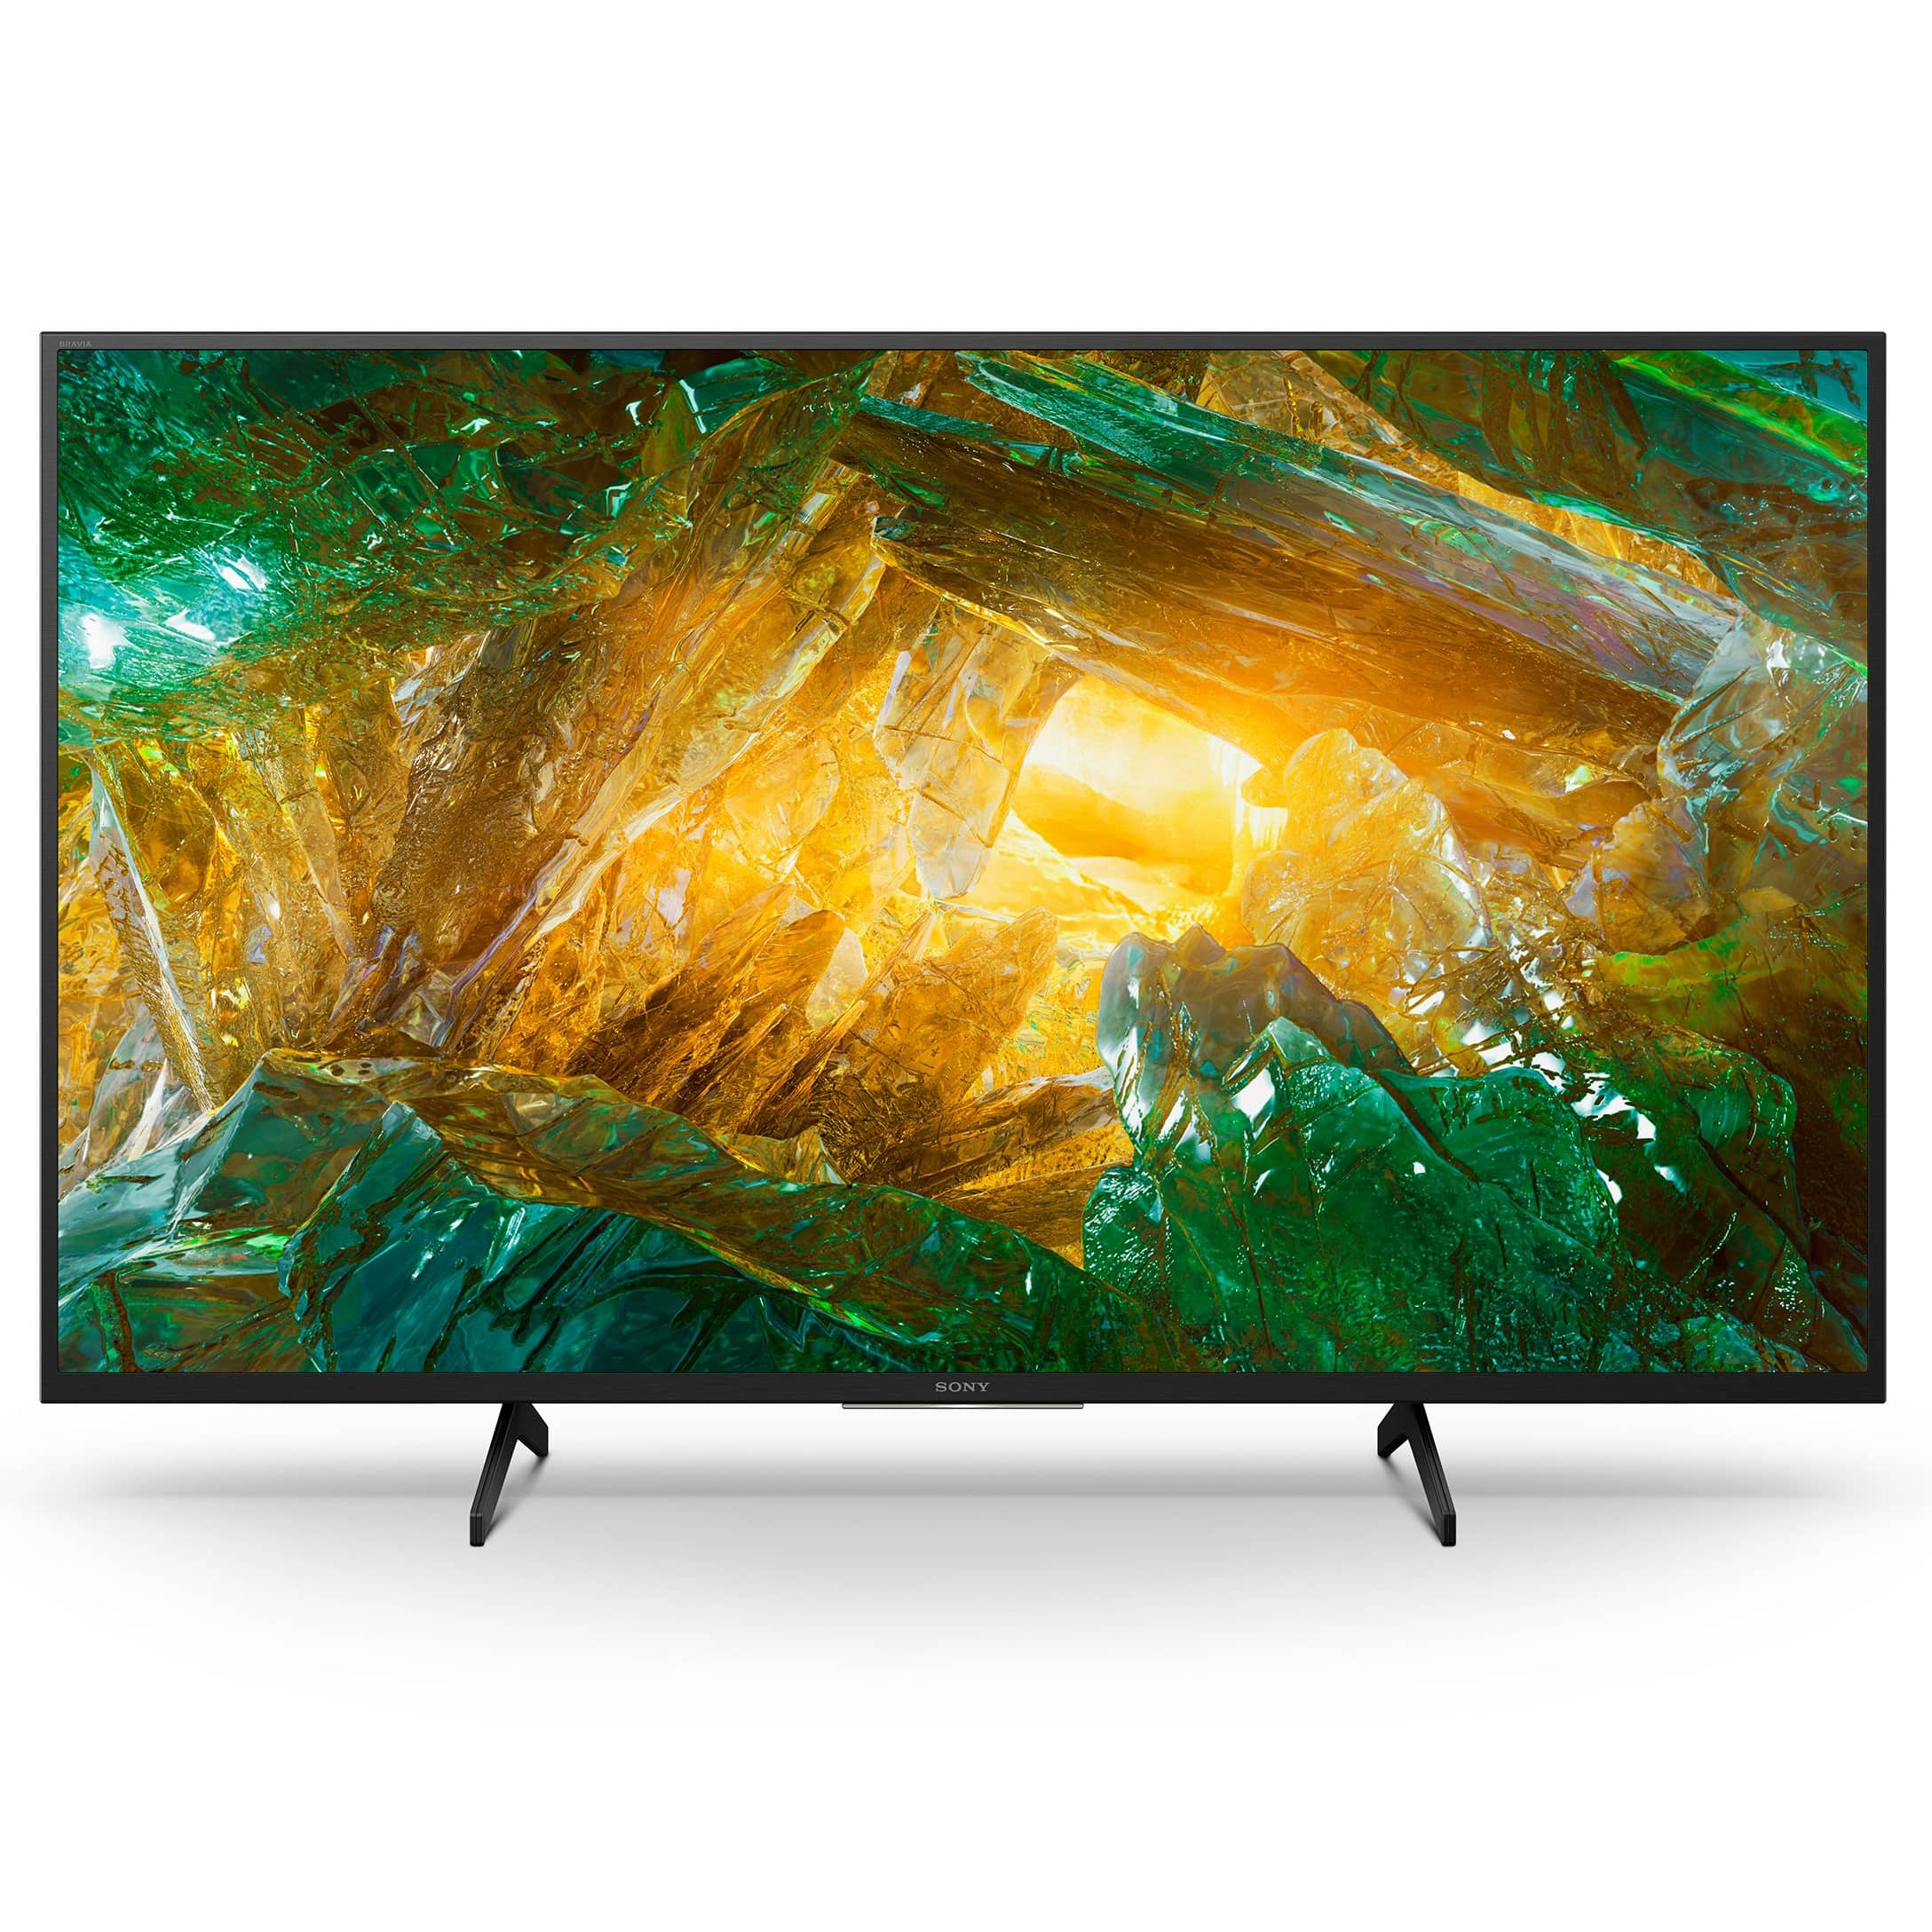 tivi-sony-android-4k-49-inch-kd-49x8050h-moi-2020